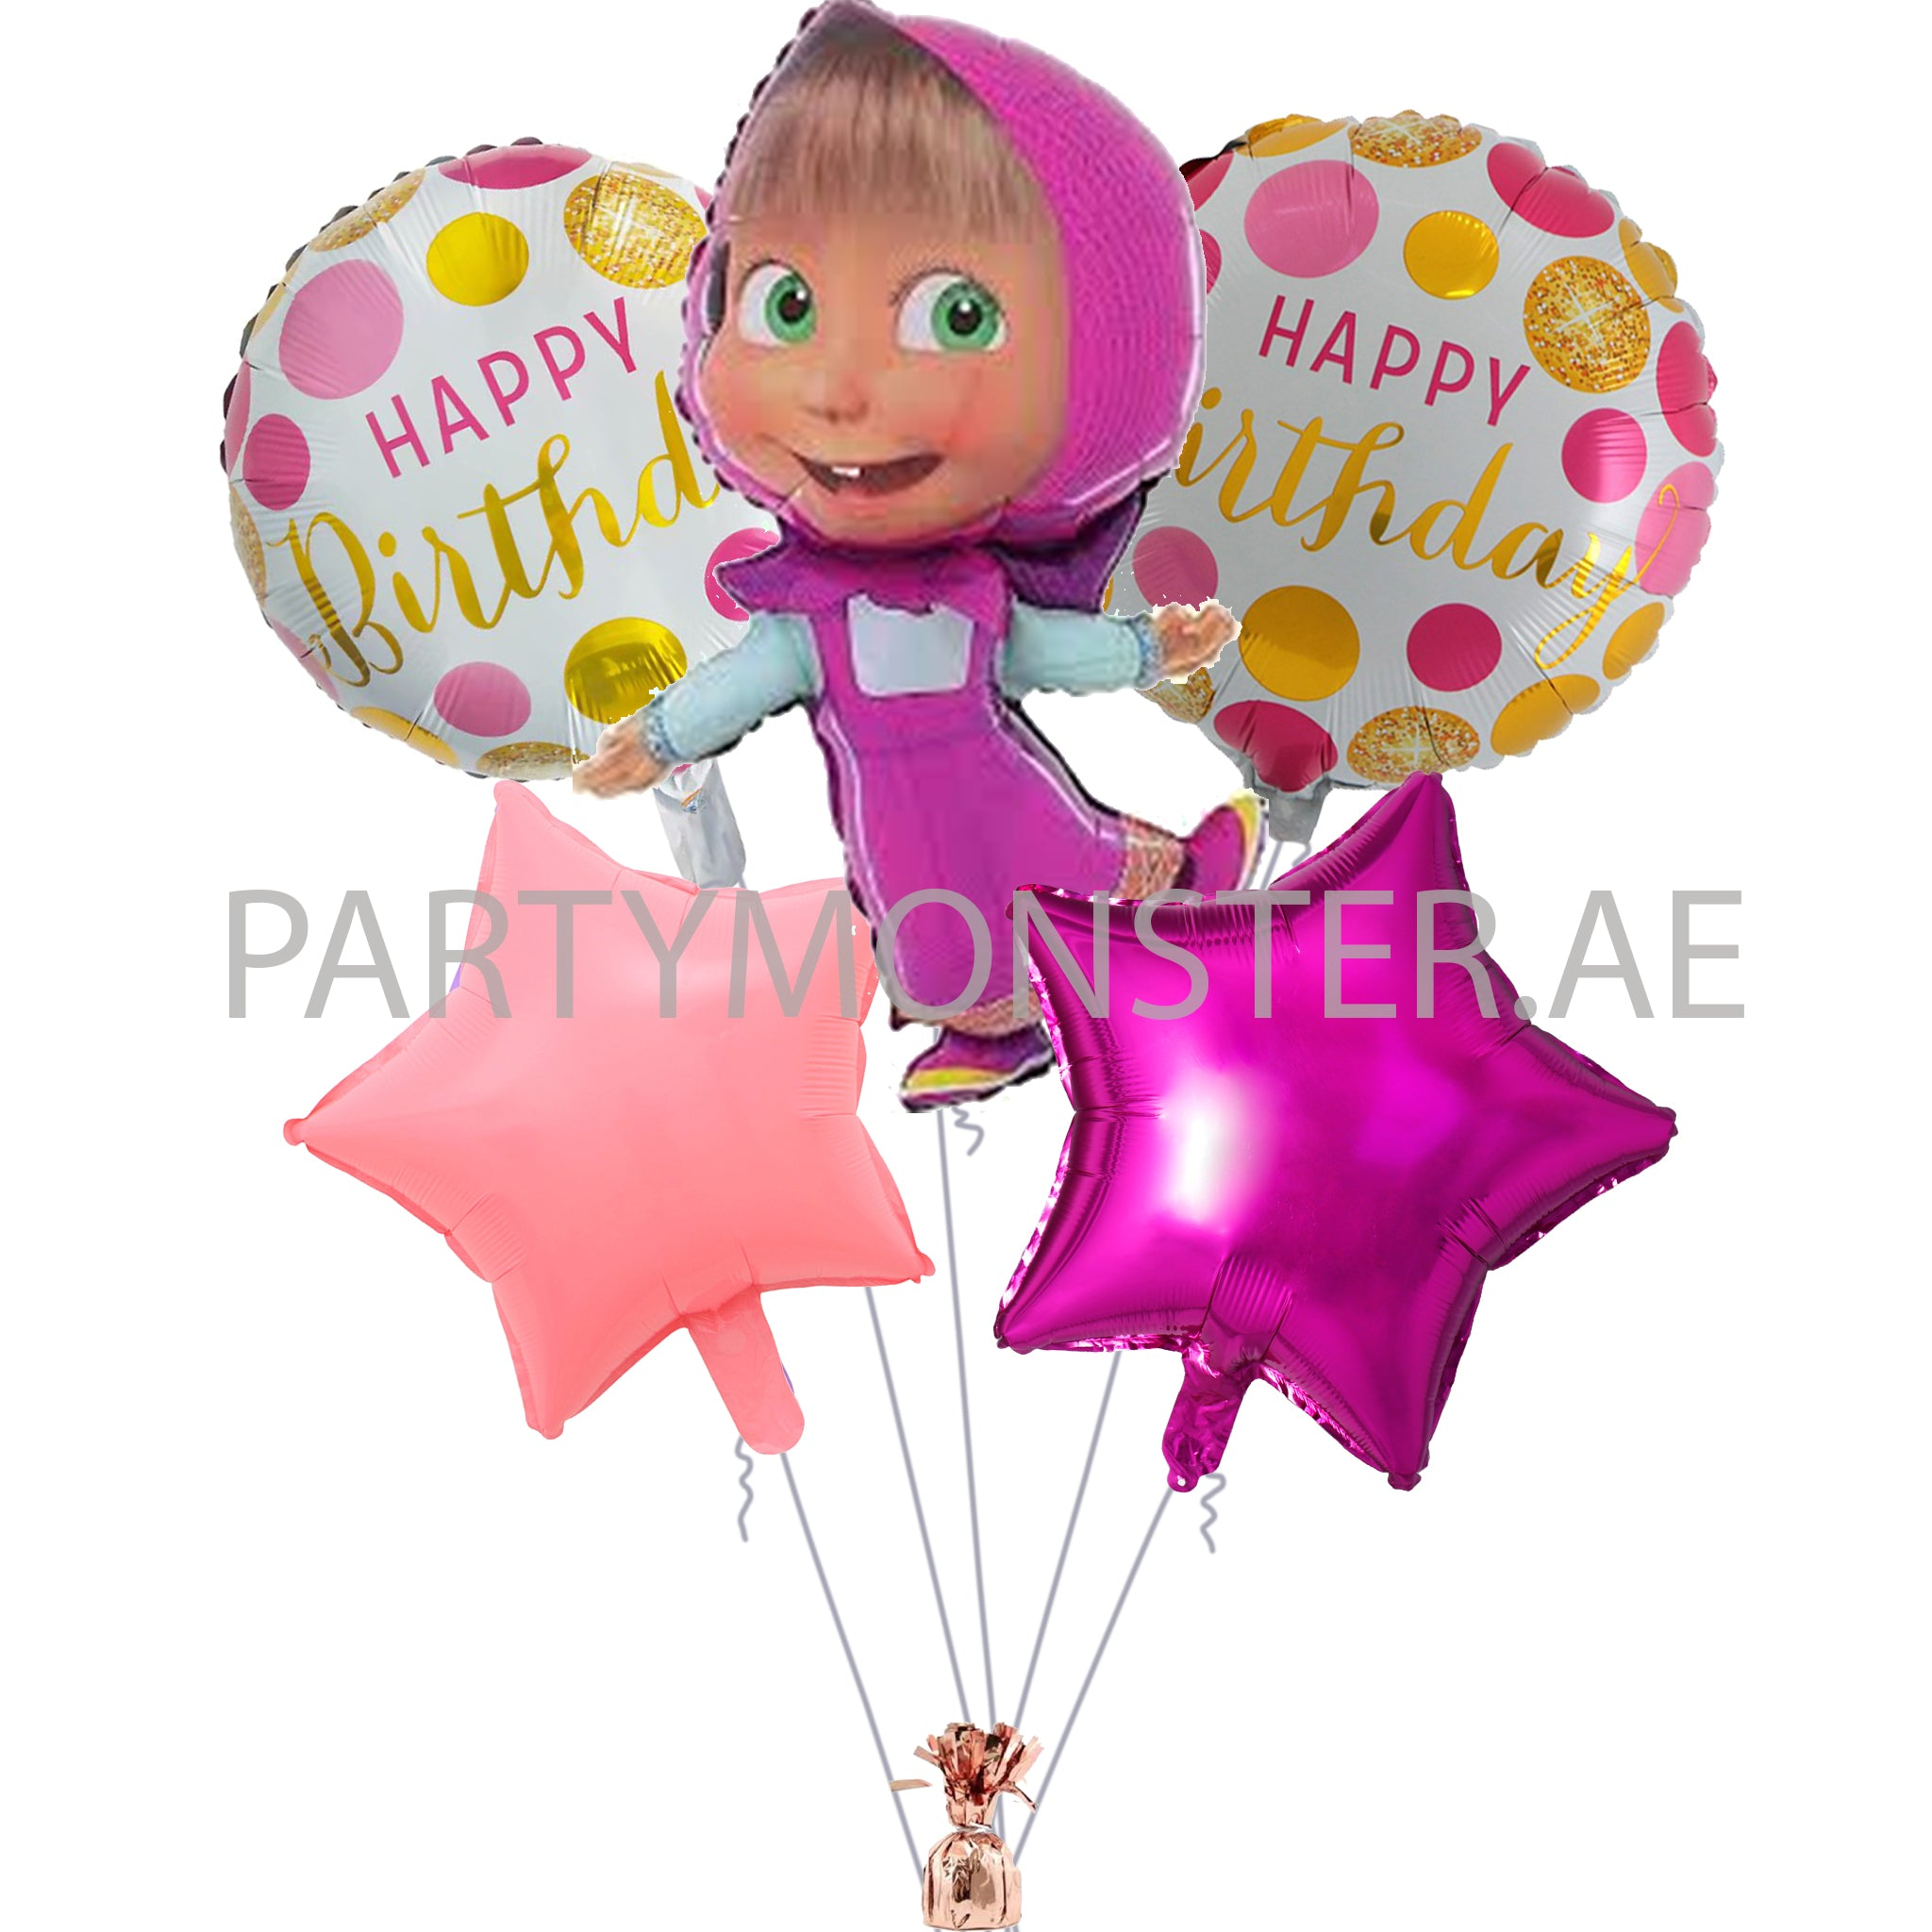 Masha and the Bear birthday balloons bouquet - PartyMonster.ae